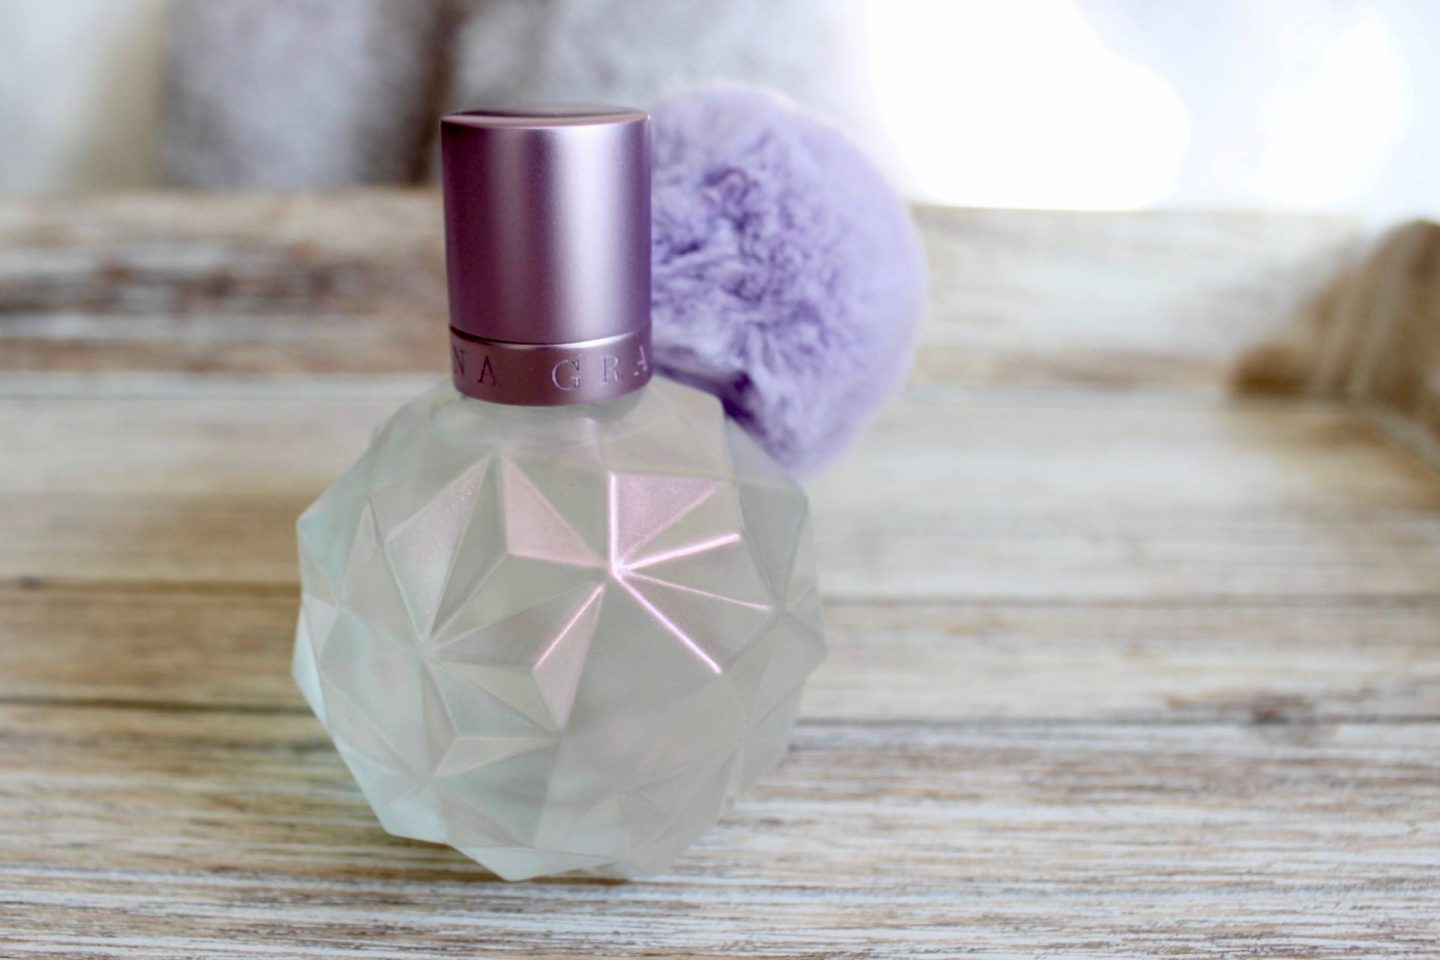 Moonlight lilac pom pom bottle details